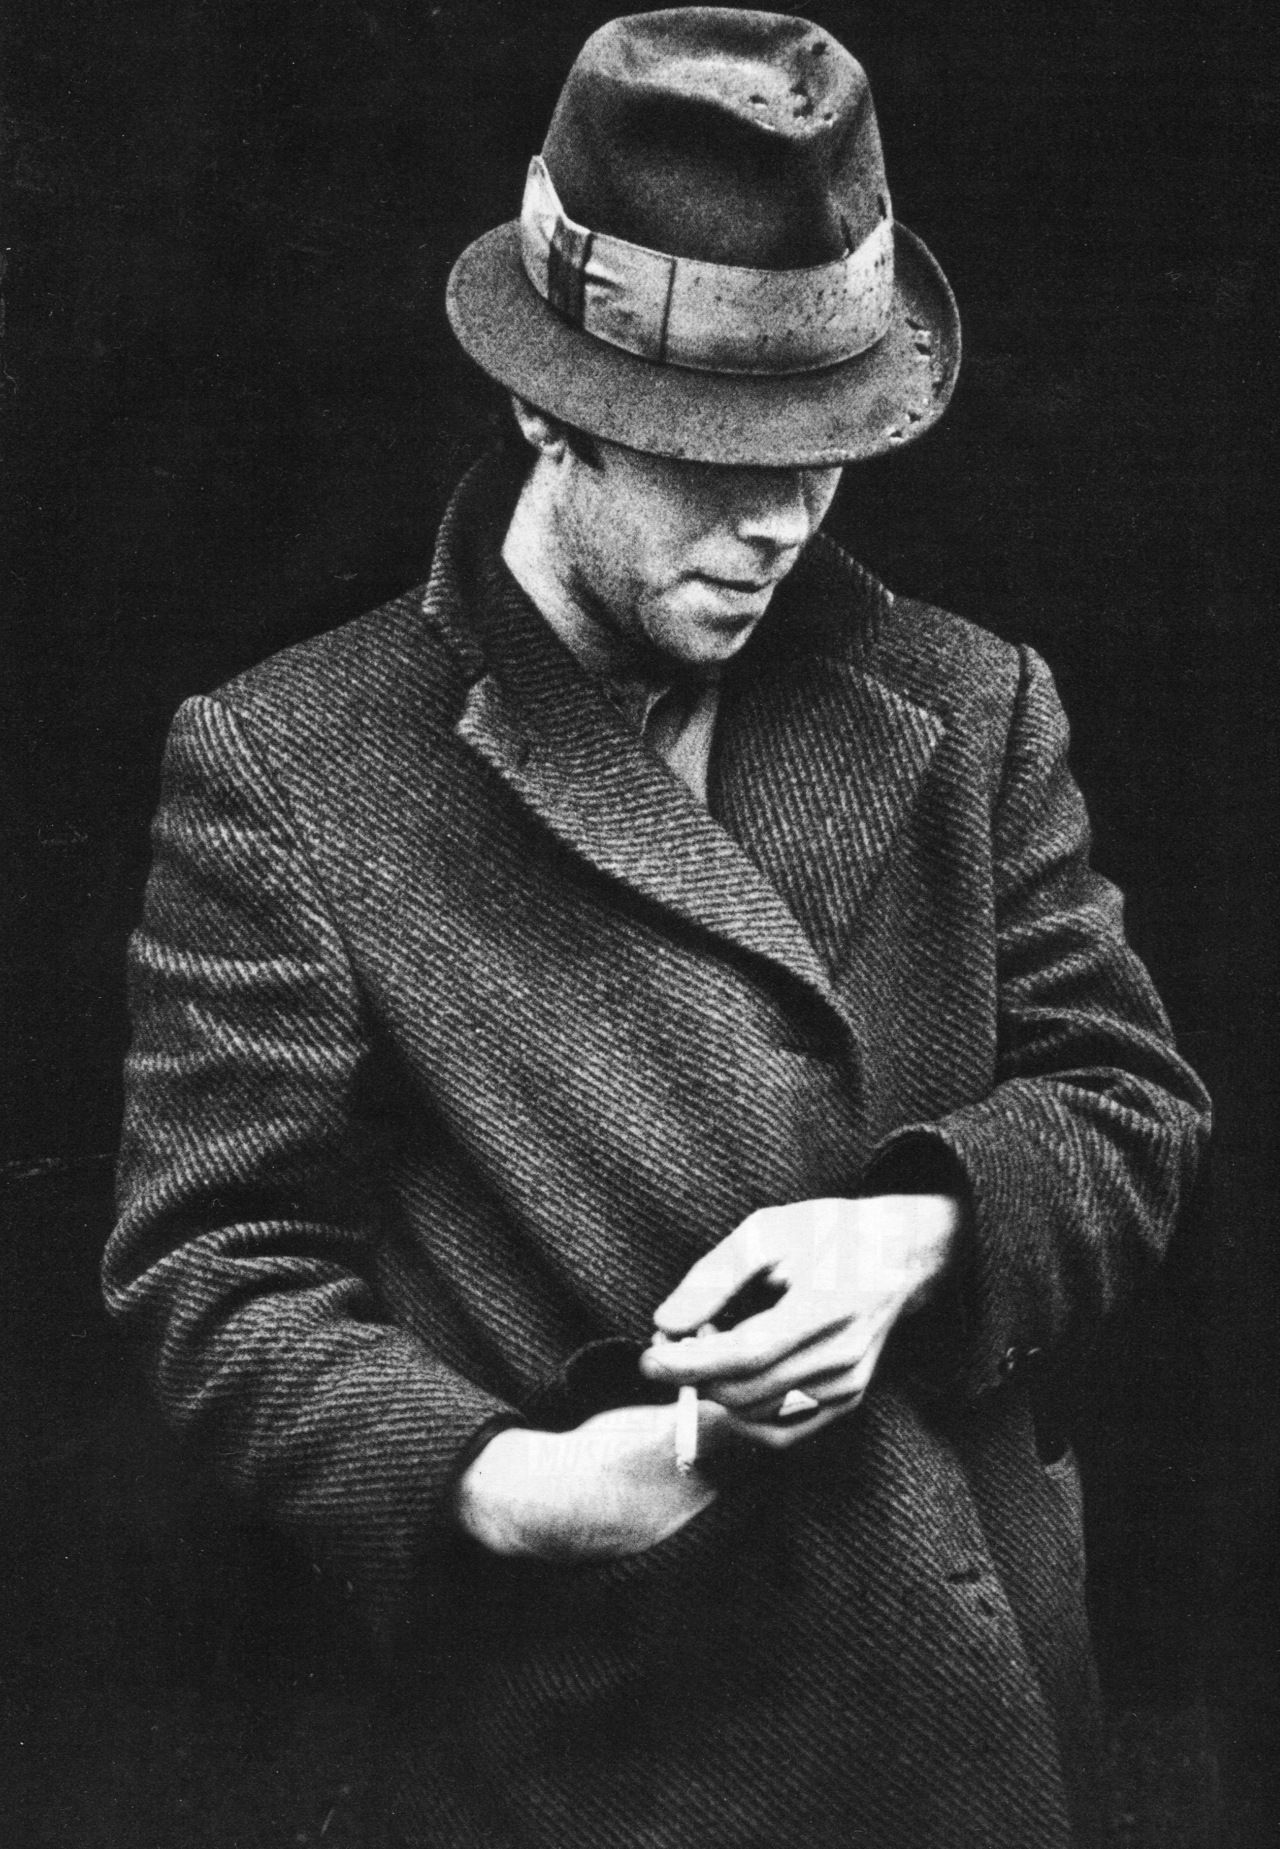 Tom Waits in London, 1981 (photographer unknown)the man